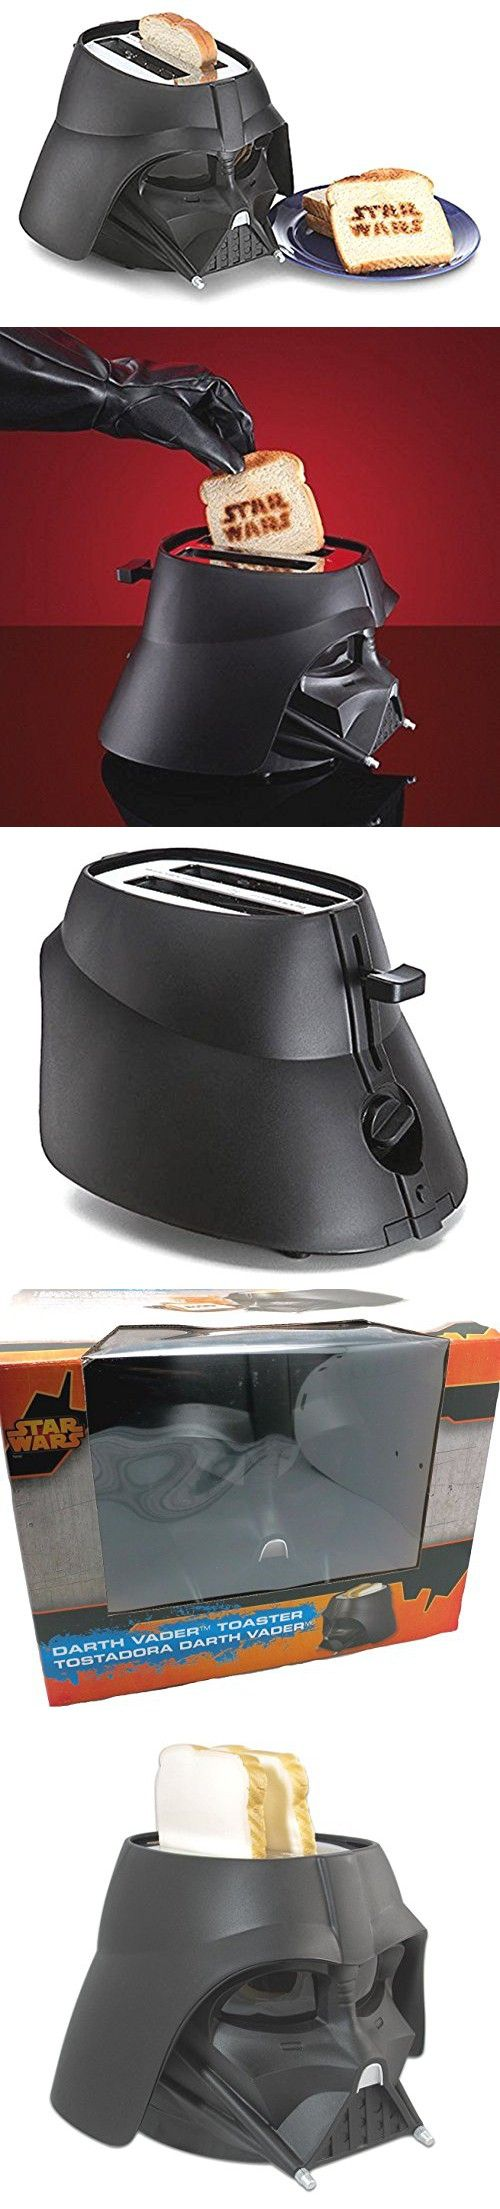 2 Slice Darth Vader Toaster, with Extra Wide Slots